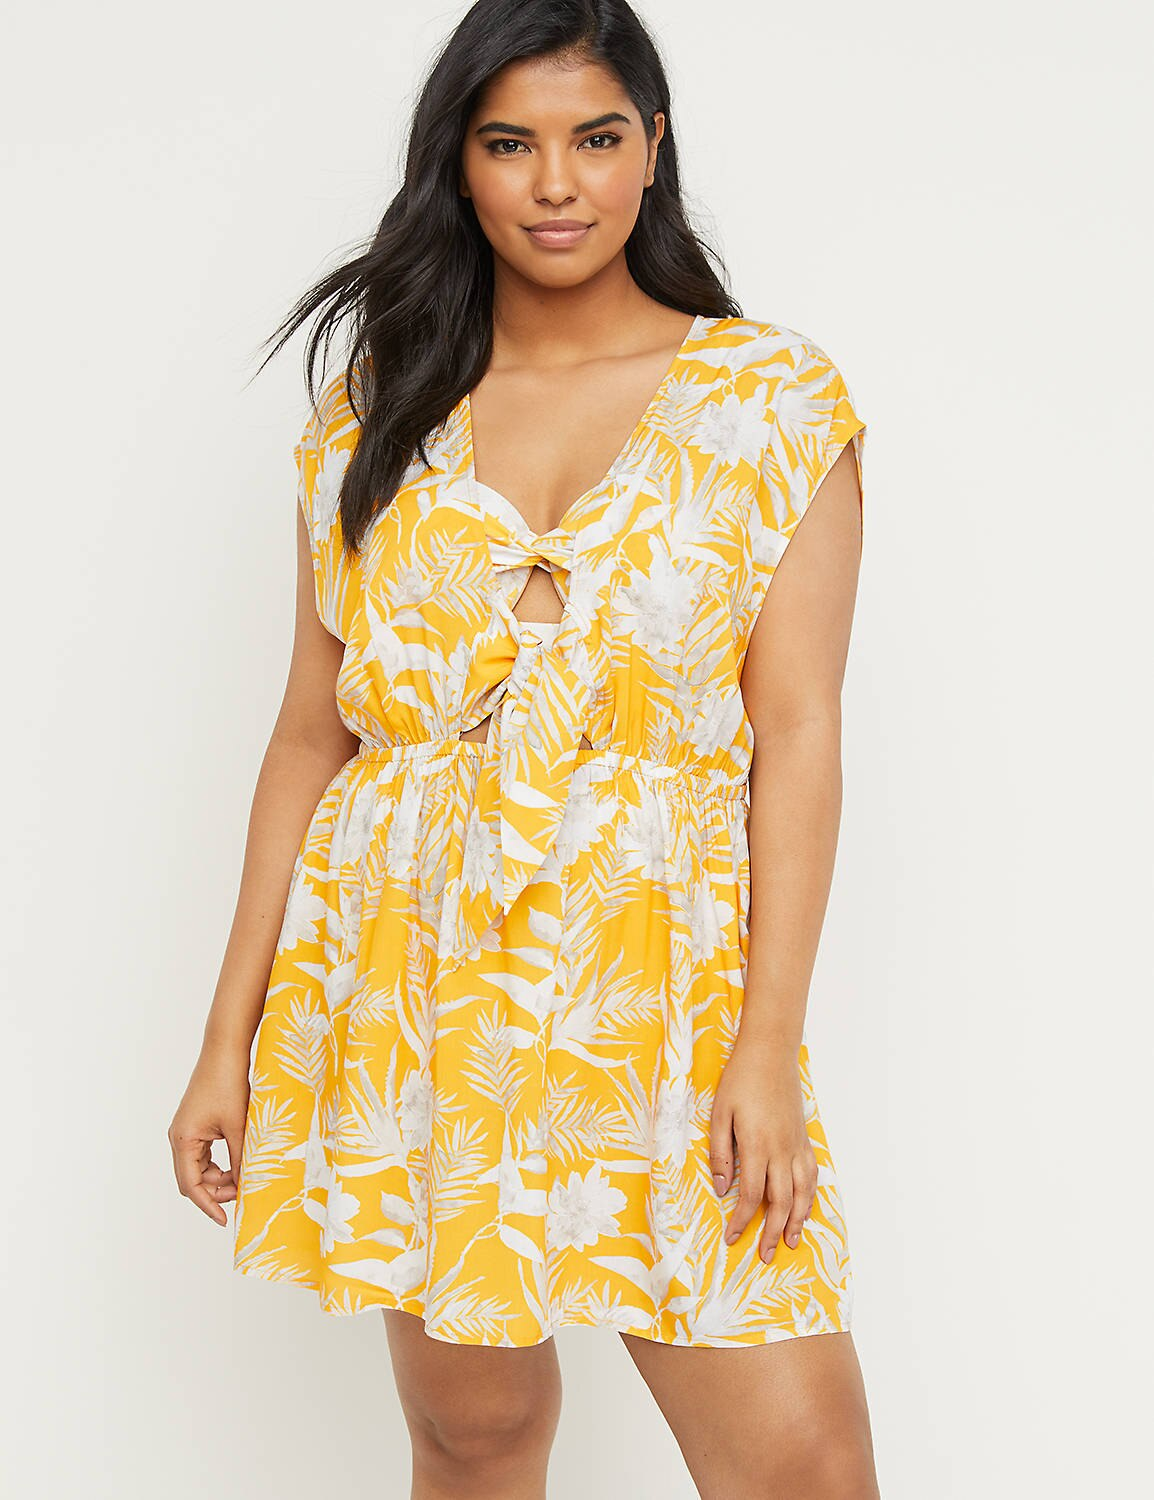 Elevate That Suit Swimsuit Cover Ups For Every